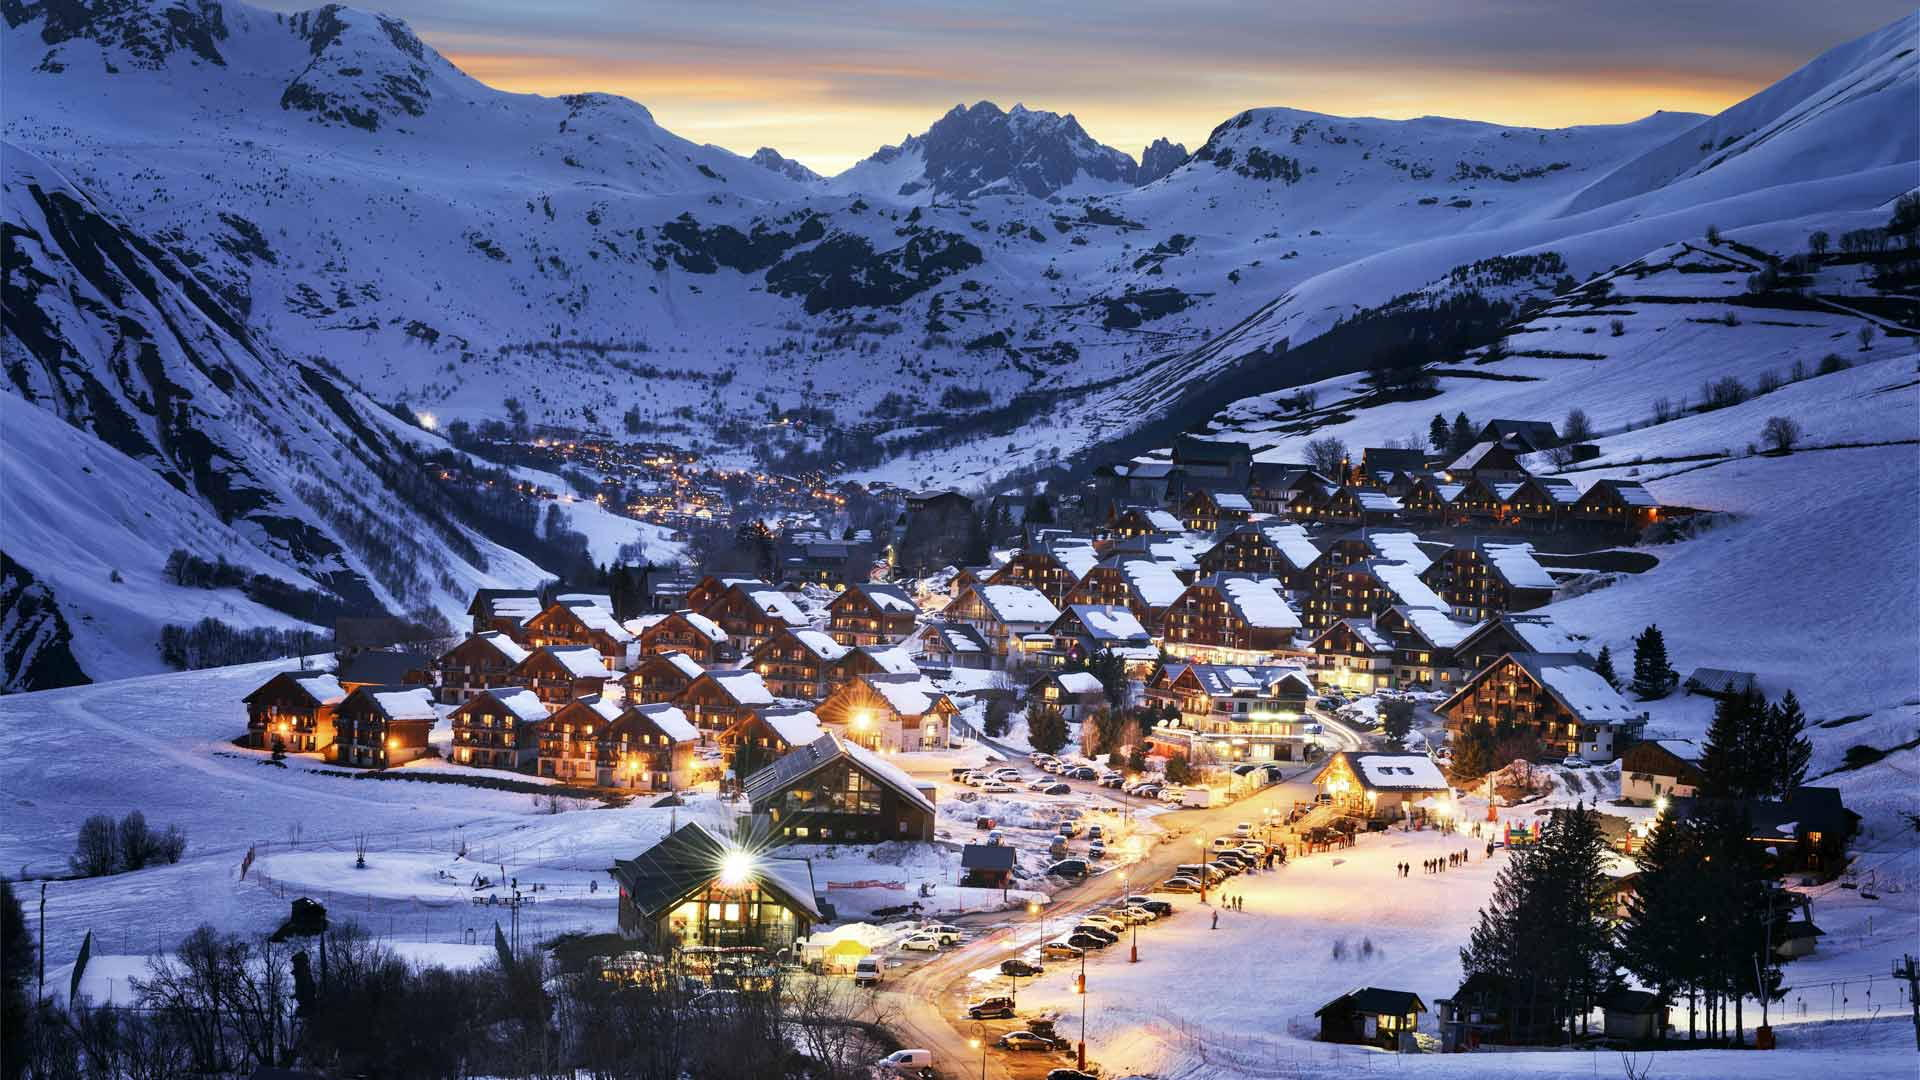 Best Places And Travel Tips For A Luxury Winter Holiday In Europe